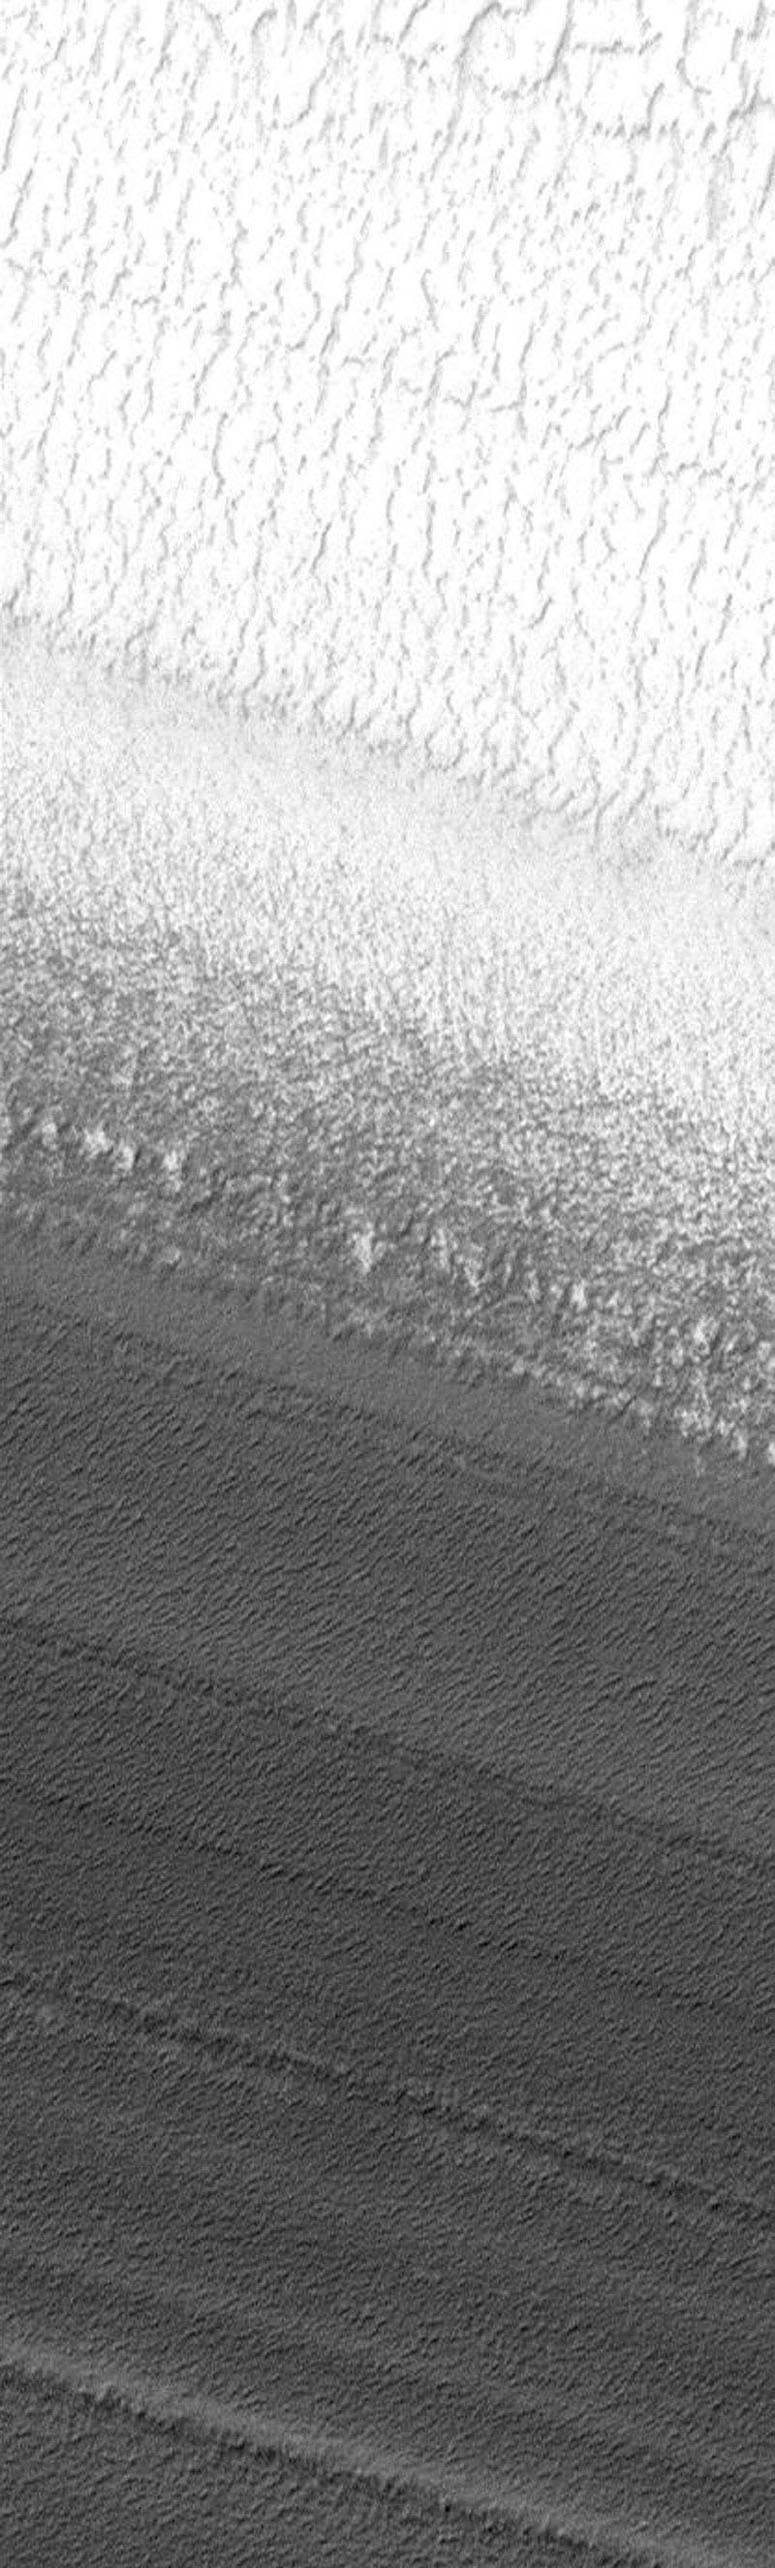 NASA's Mars Global Surveyor shows Mars' north polar residual cap surface, seen to grade downhill into exposures of layered terrain.